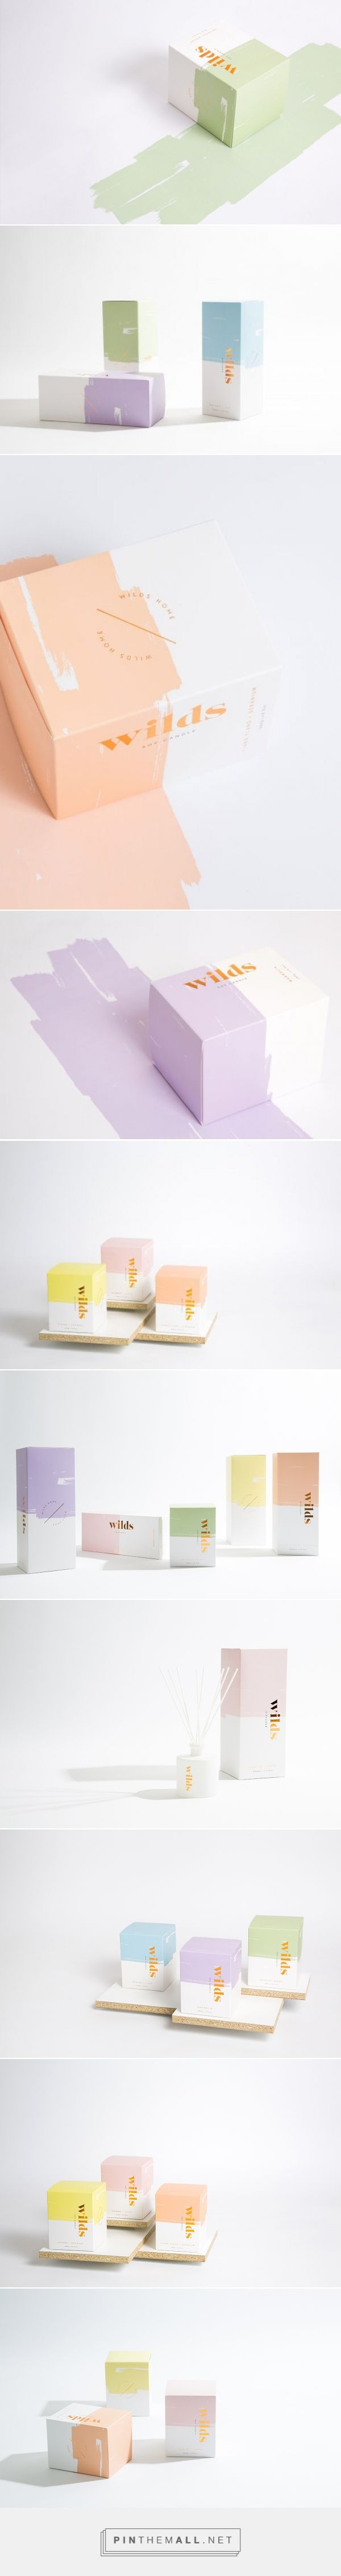 Wilds Candle Packaging by Smack Bang Designs | Fivestar Branding Agency – Design and Branding Agency & Curated Inspiration Gallery #packaging #packagingdesign #designinspiration #design #branding #candlepackaging #candles